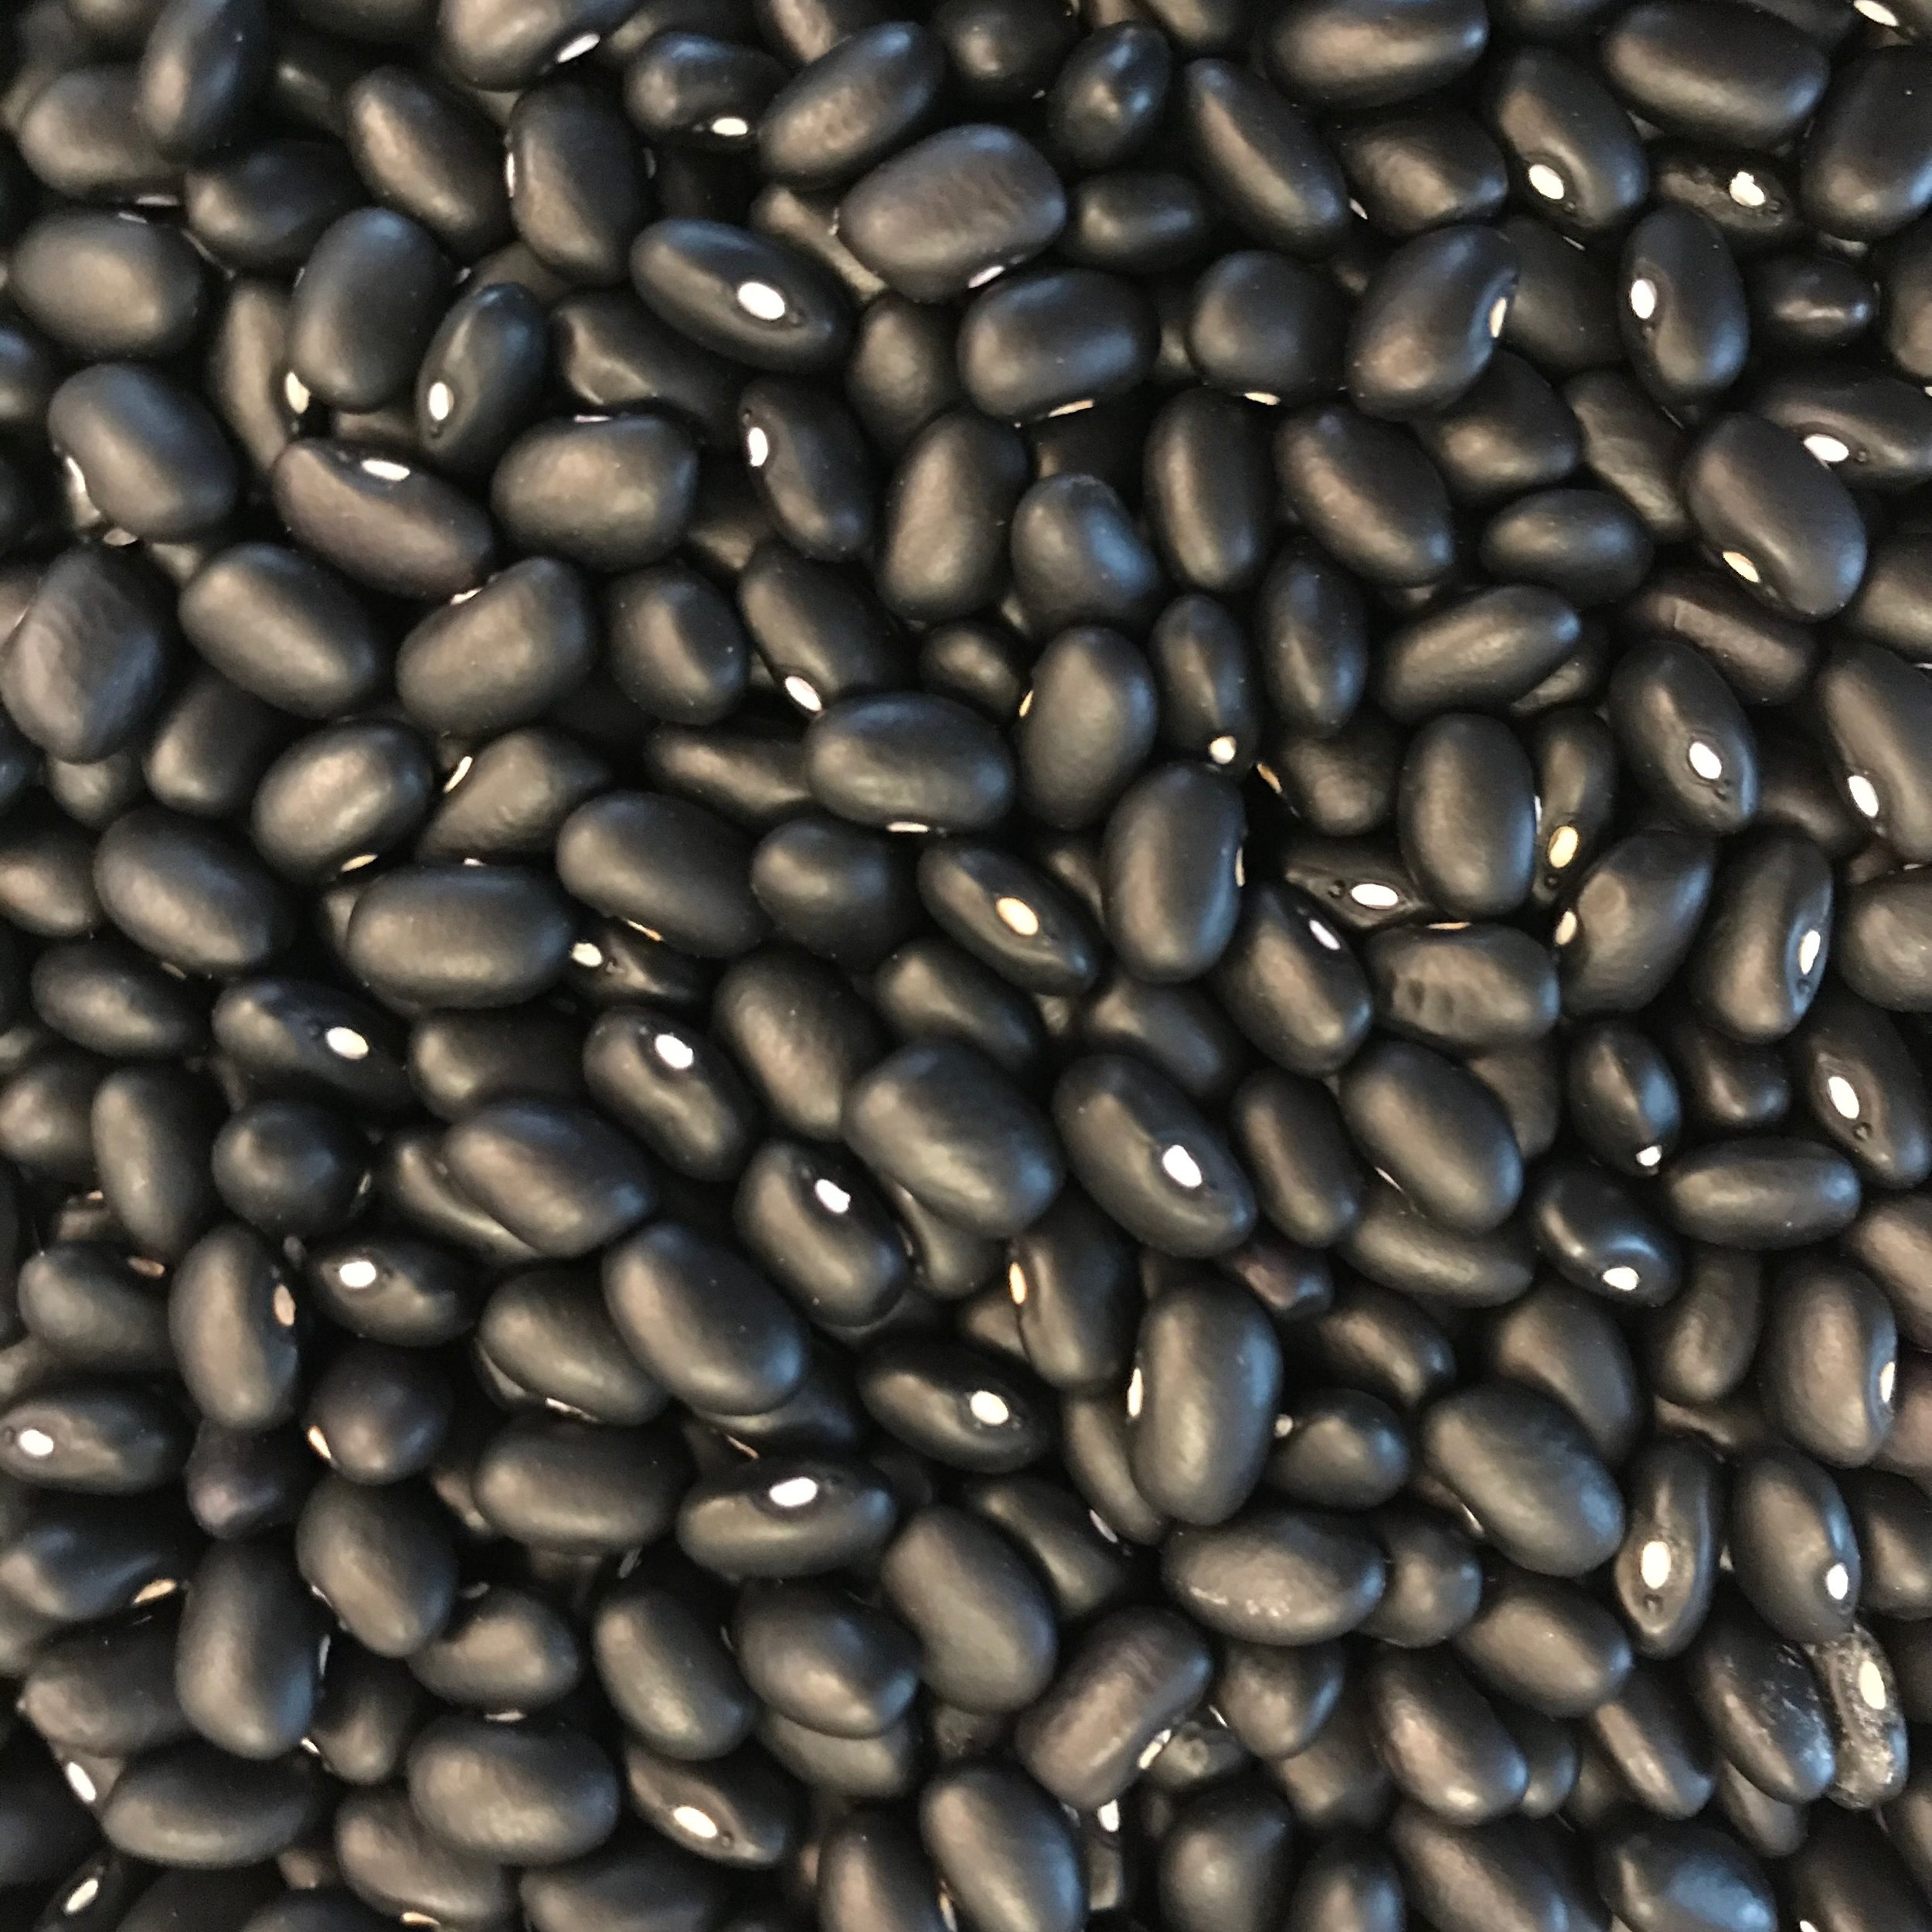 Autumn black bean harvest